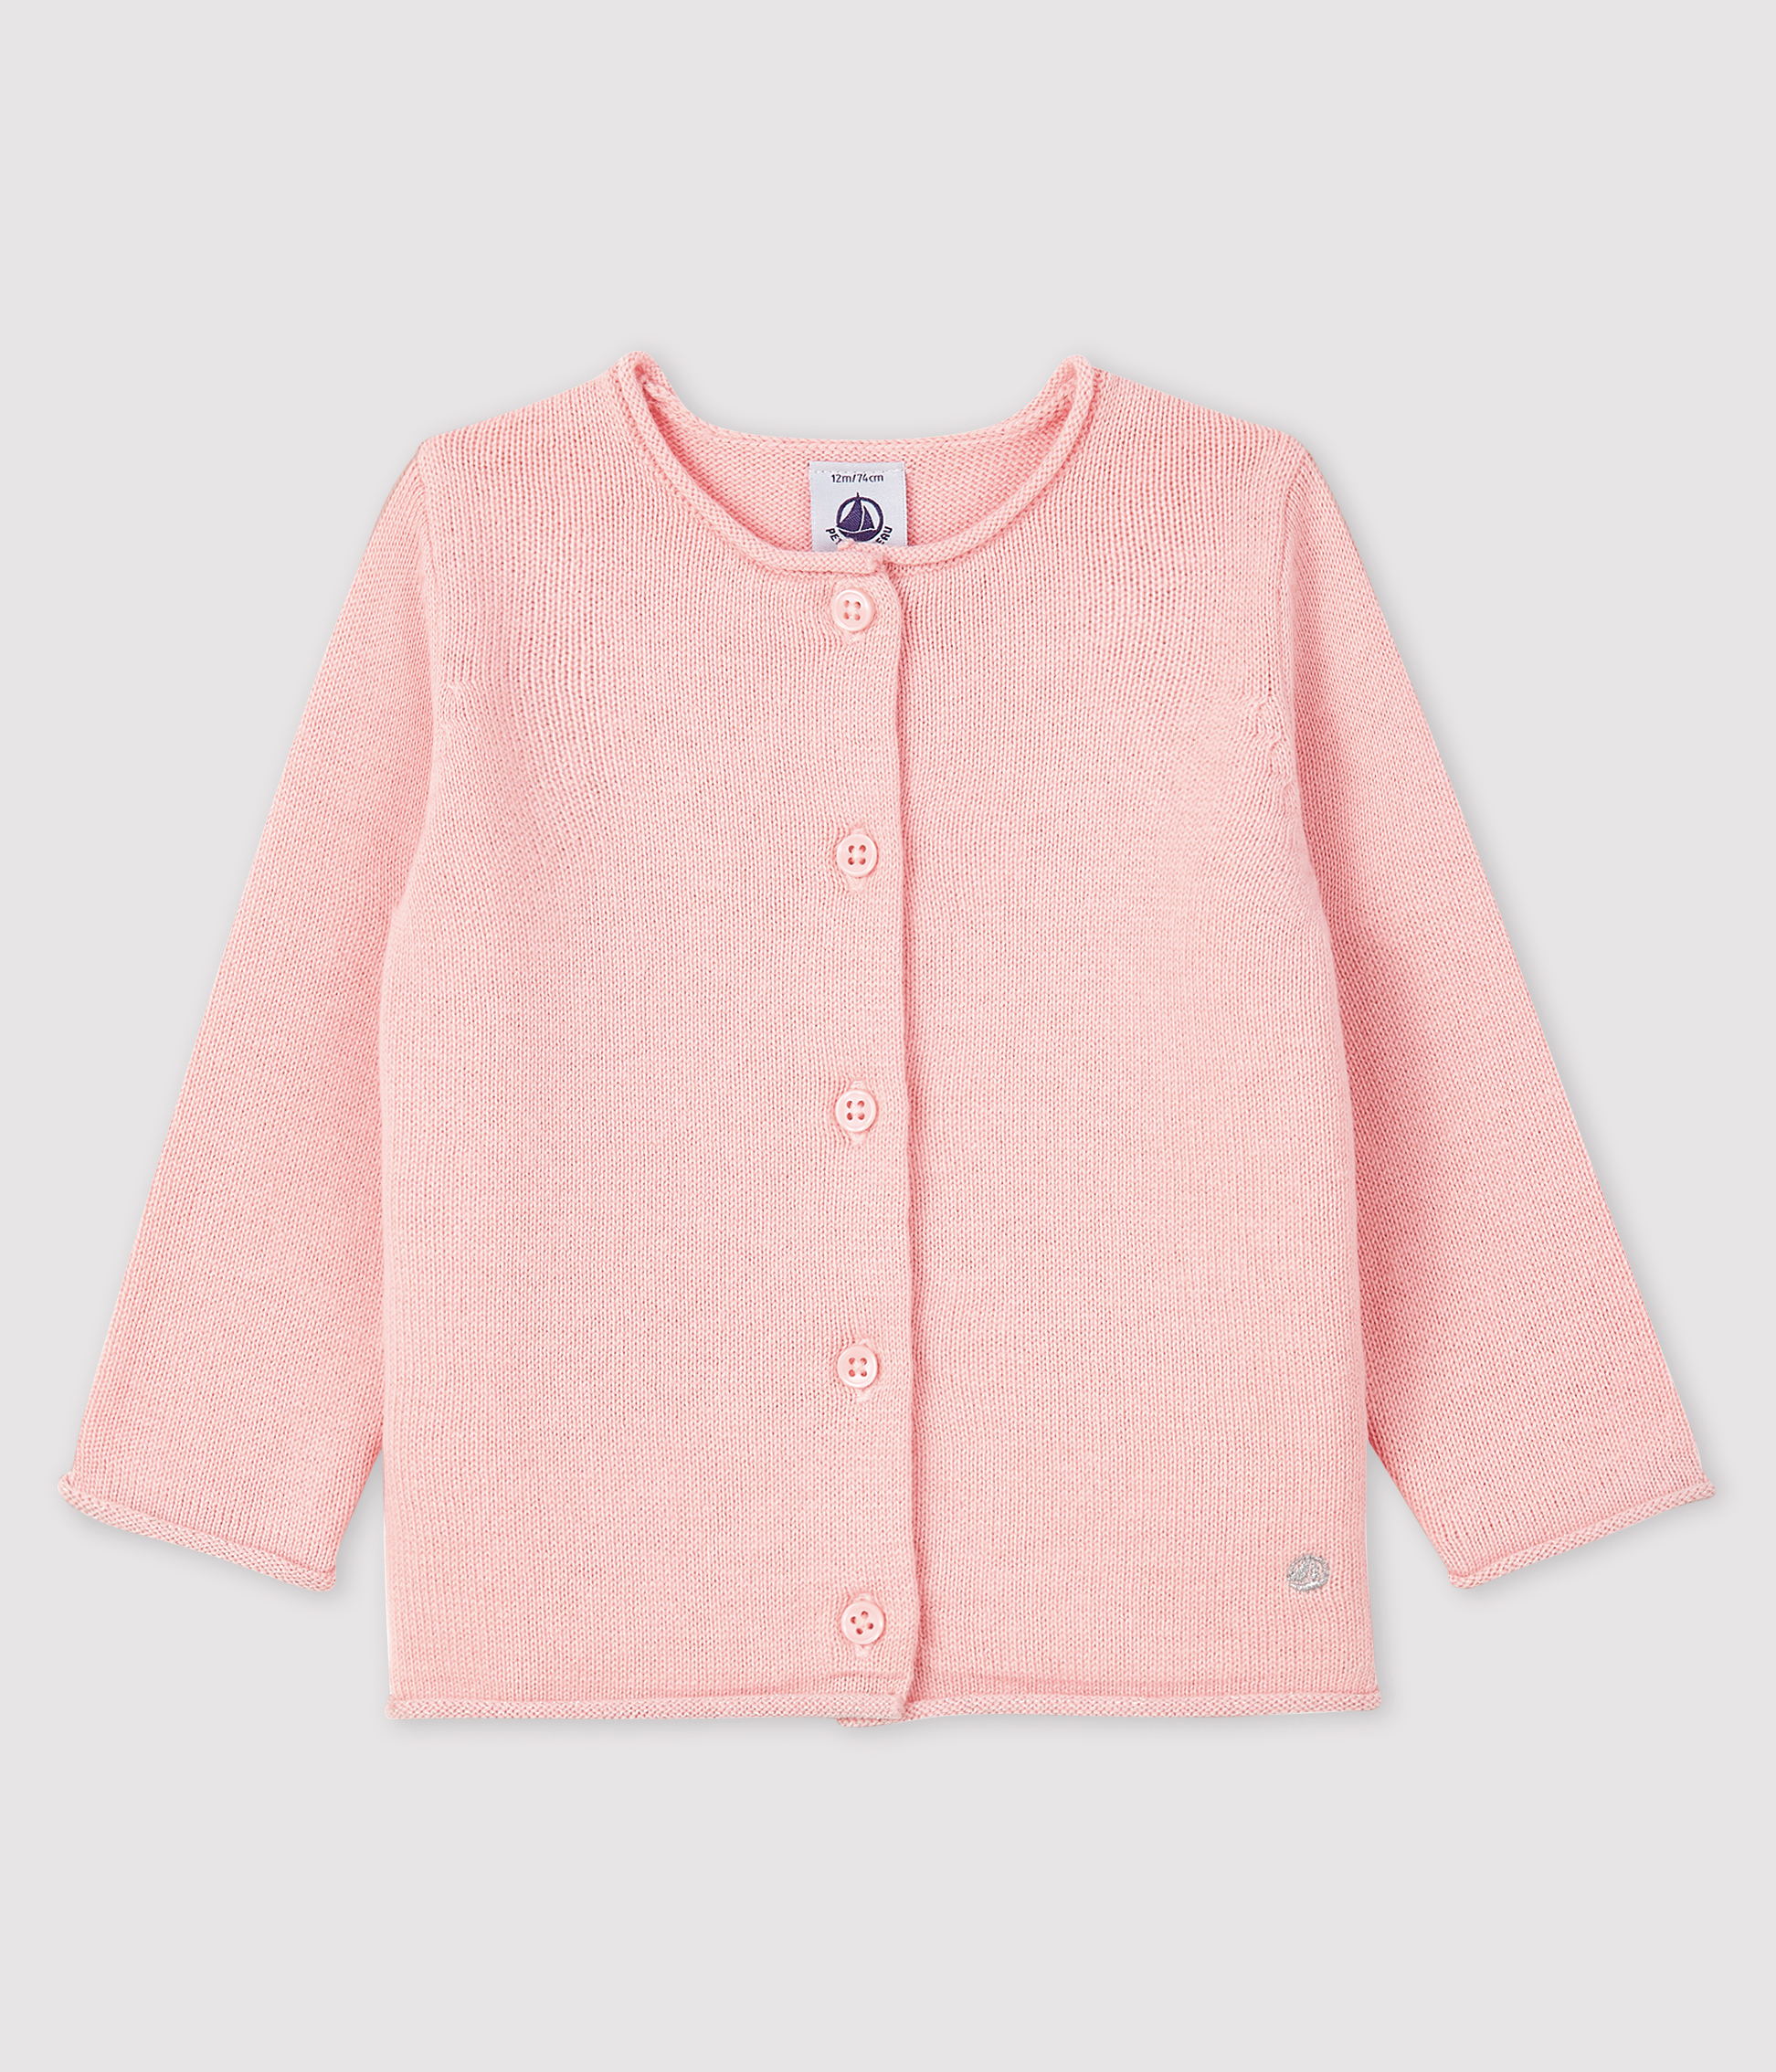 Baby girl's long-sleeved cardigan